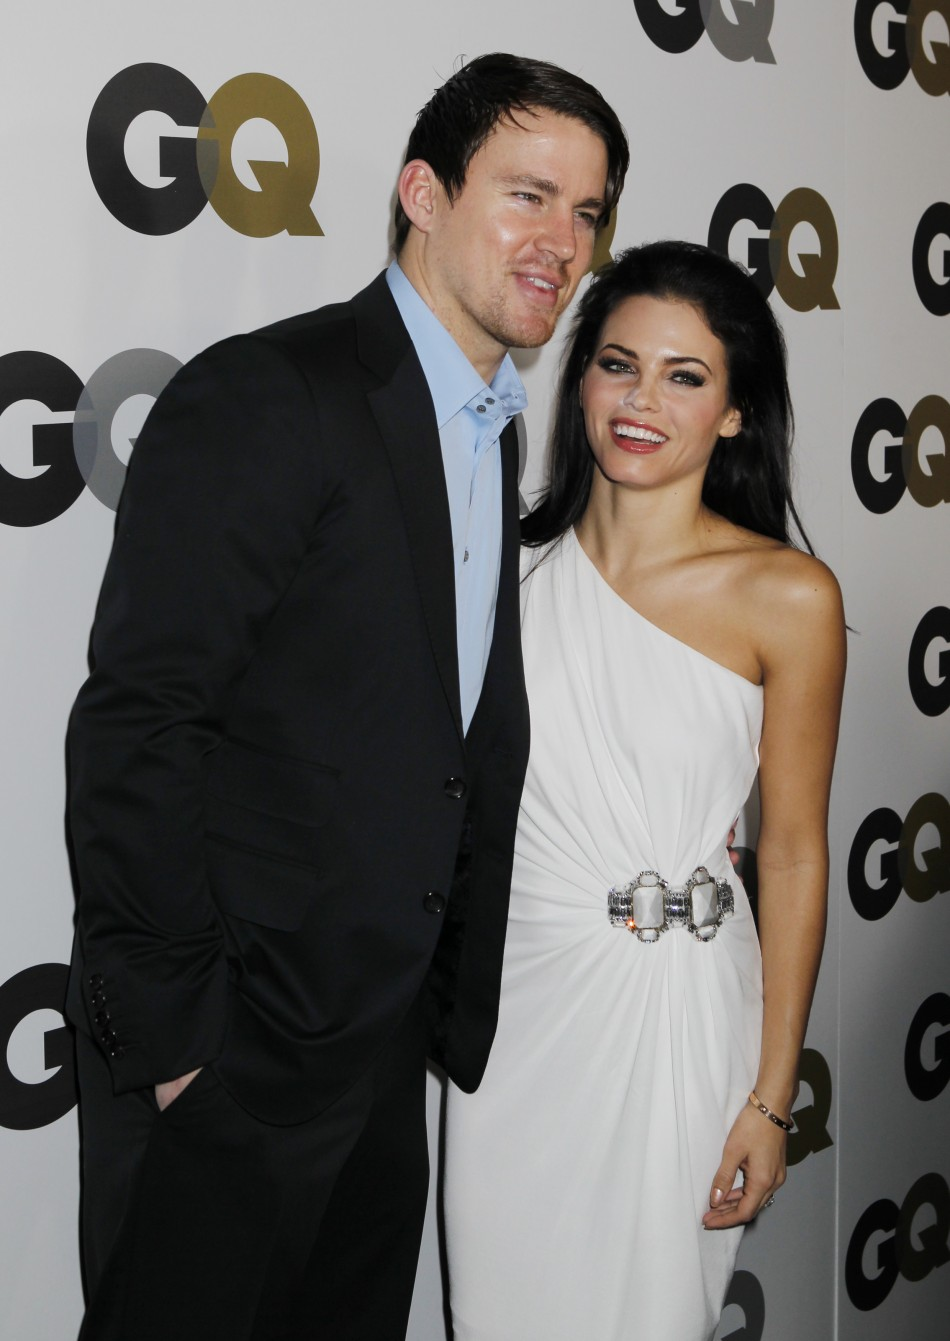 Actor Channing Tatum and Jenna Dewan arrive at the GQ Magazine 2010 quotMen of the Yearquot party in Hollywood